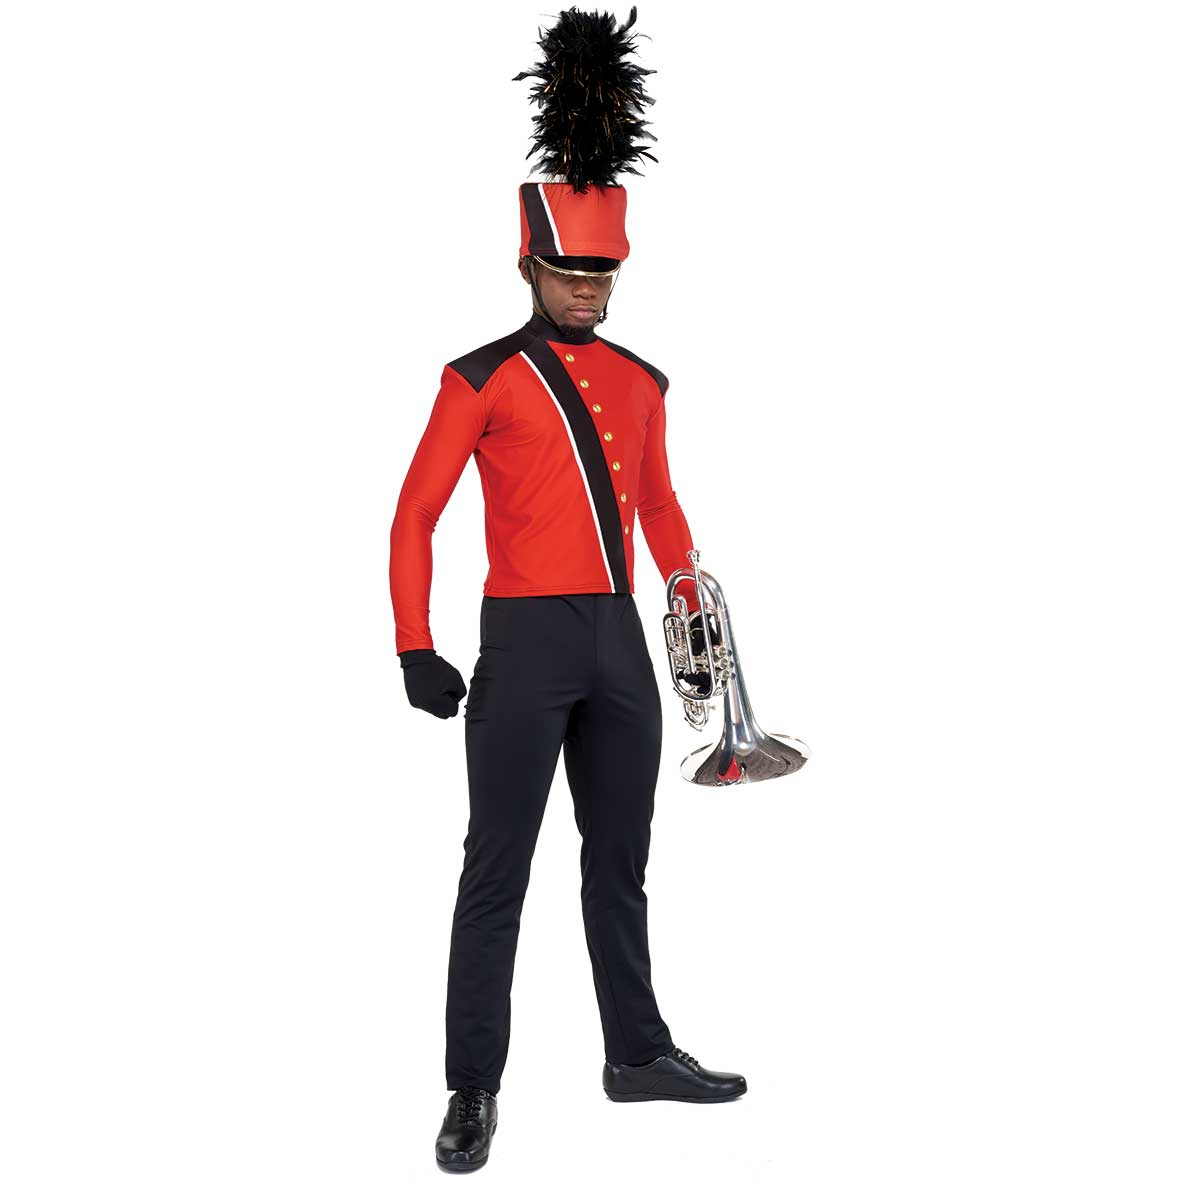 Digital Band Uniforms: Style 1910 Jacket